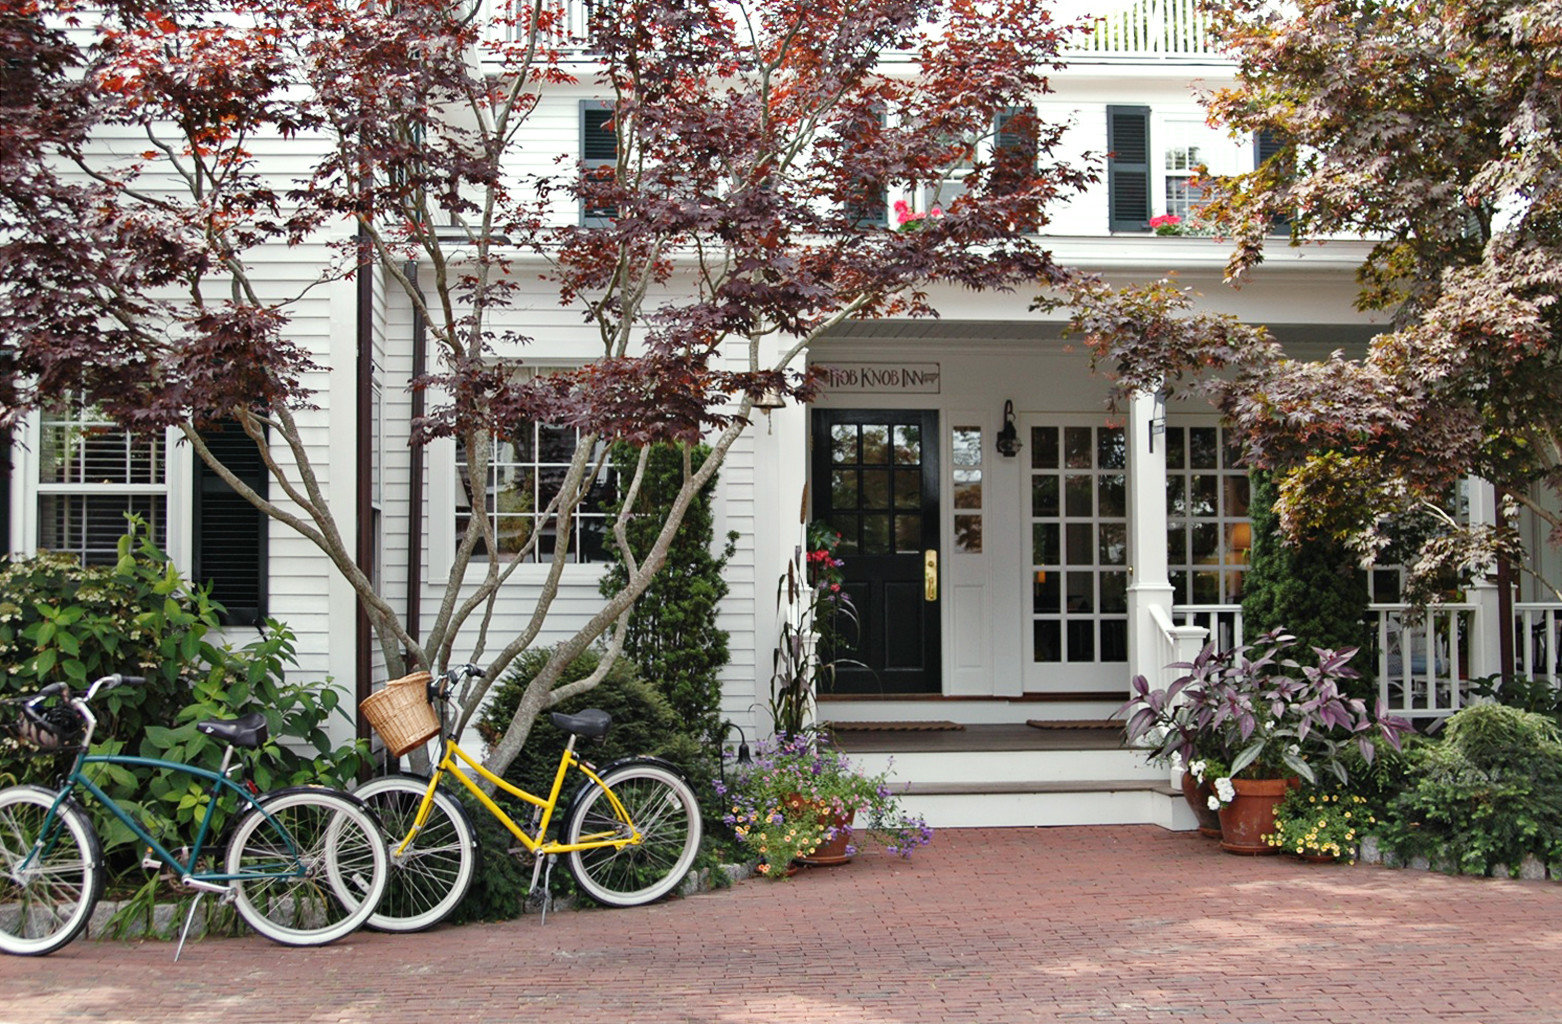 B&B Grounds Ocean Trip Ideas tree outdoor building bicycle ground house neighbourhood residential area home flower estate Courtyard yard Garden cottage parked